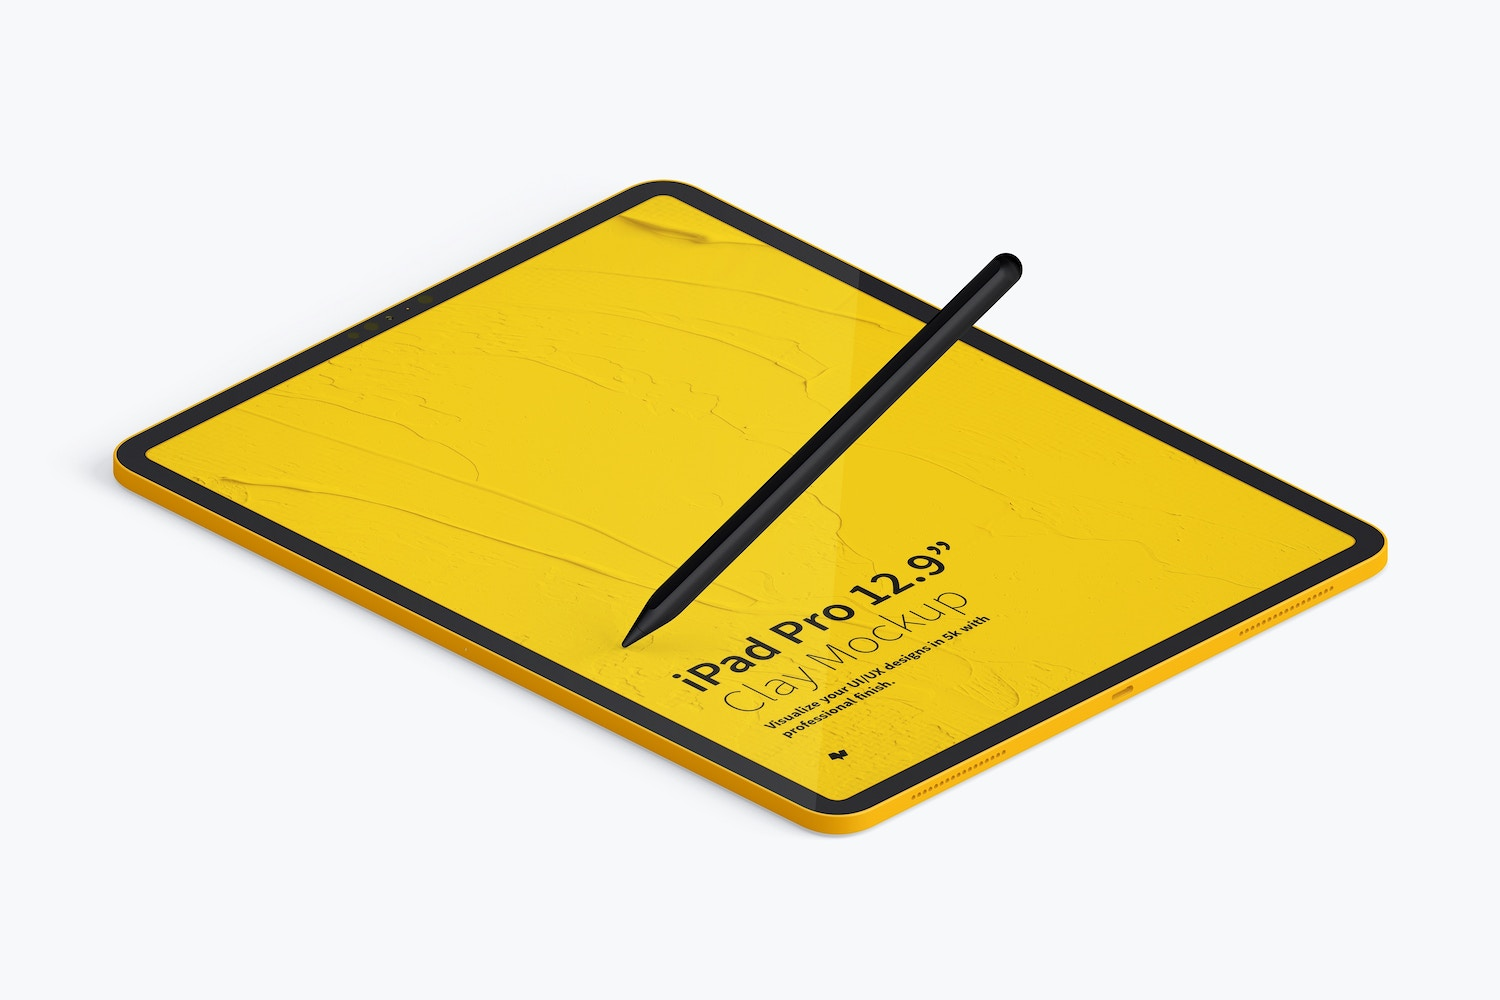 "Clay iPad Pro 12.9"" Mockup, Isometric Left View (4) by Original Mockups on Original Mockups"